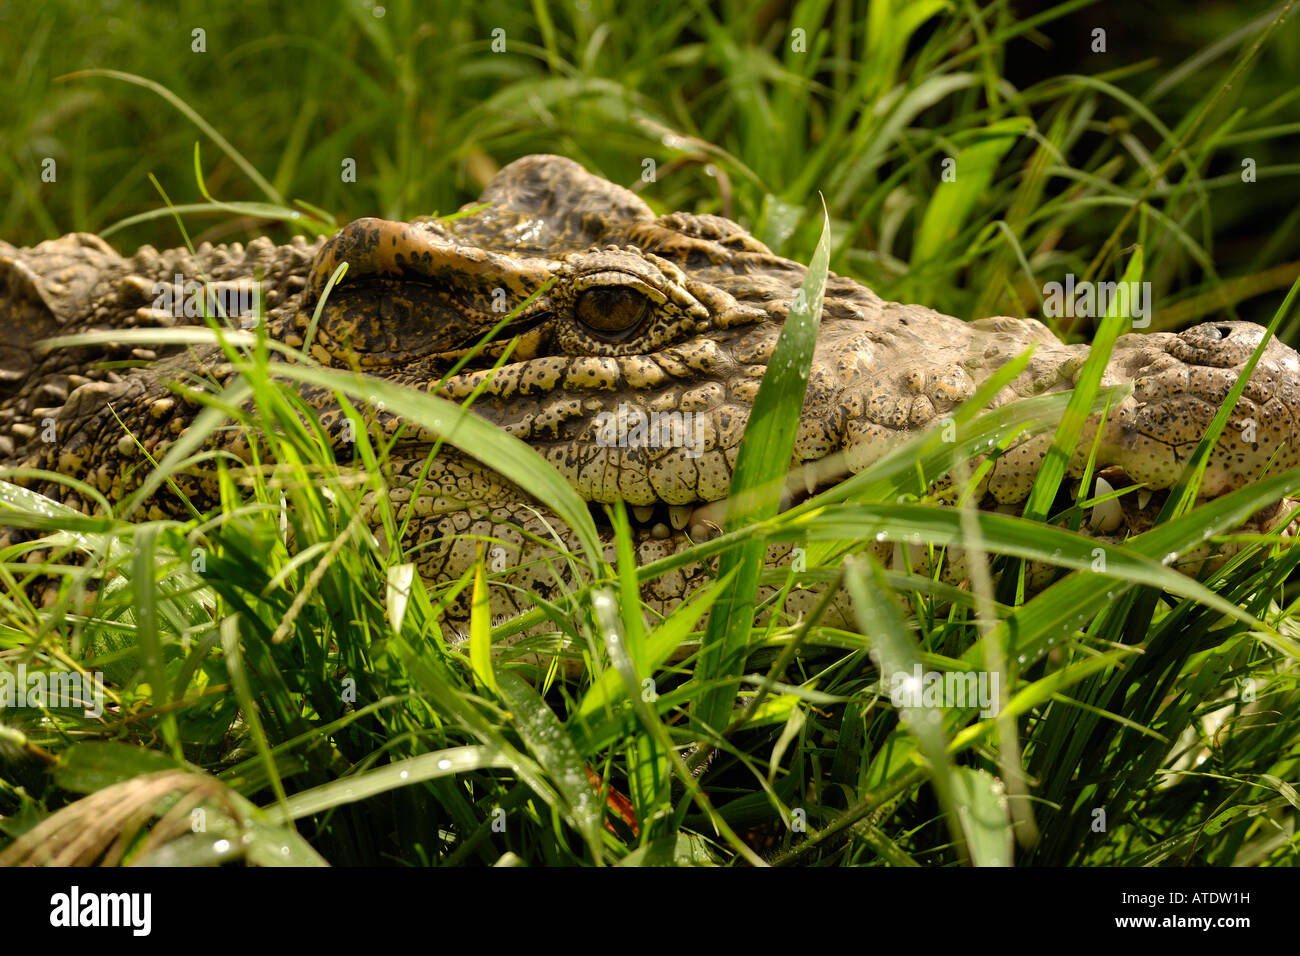 Cuban Crocodile Crocodylus rhombifer endangered captive Florida - Stock Image